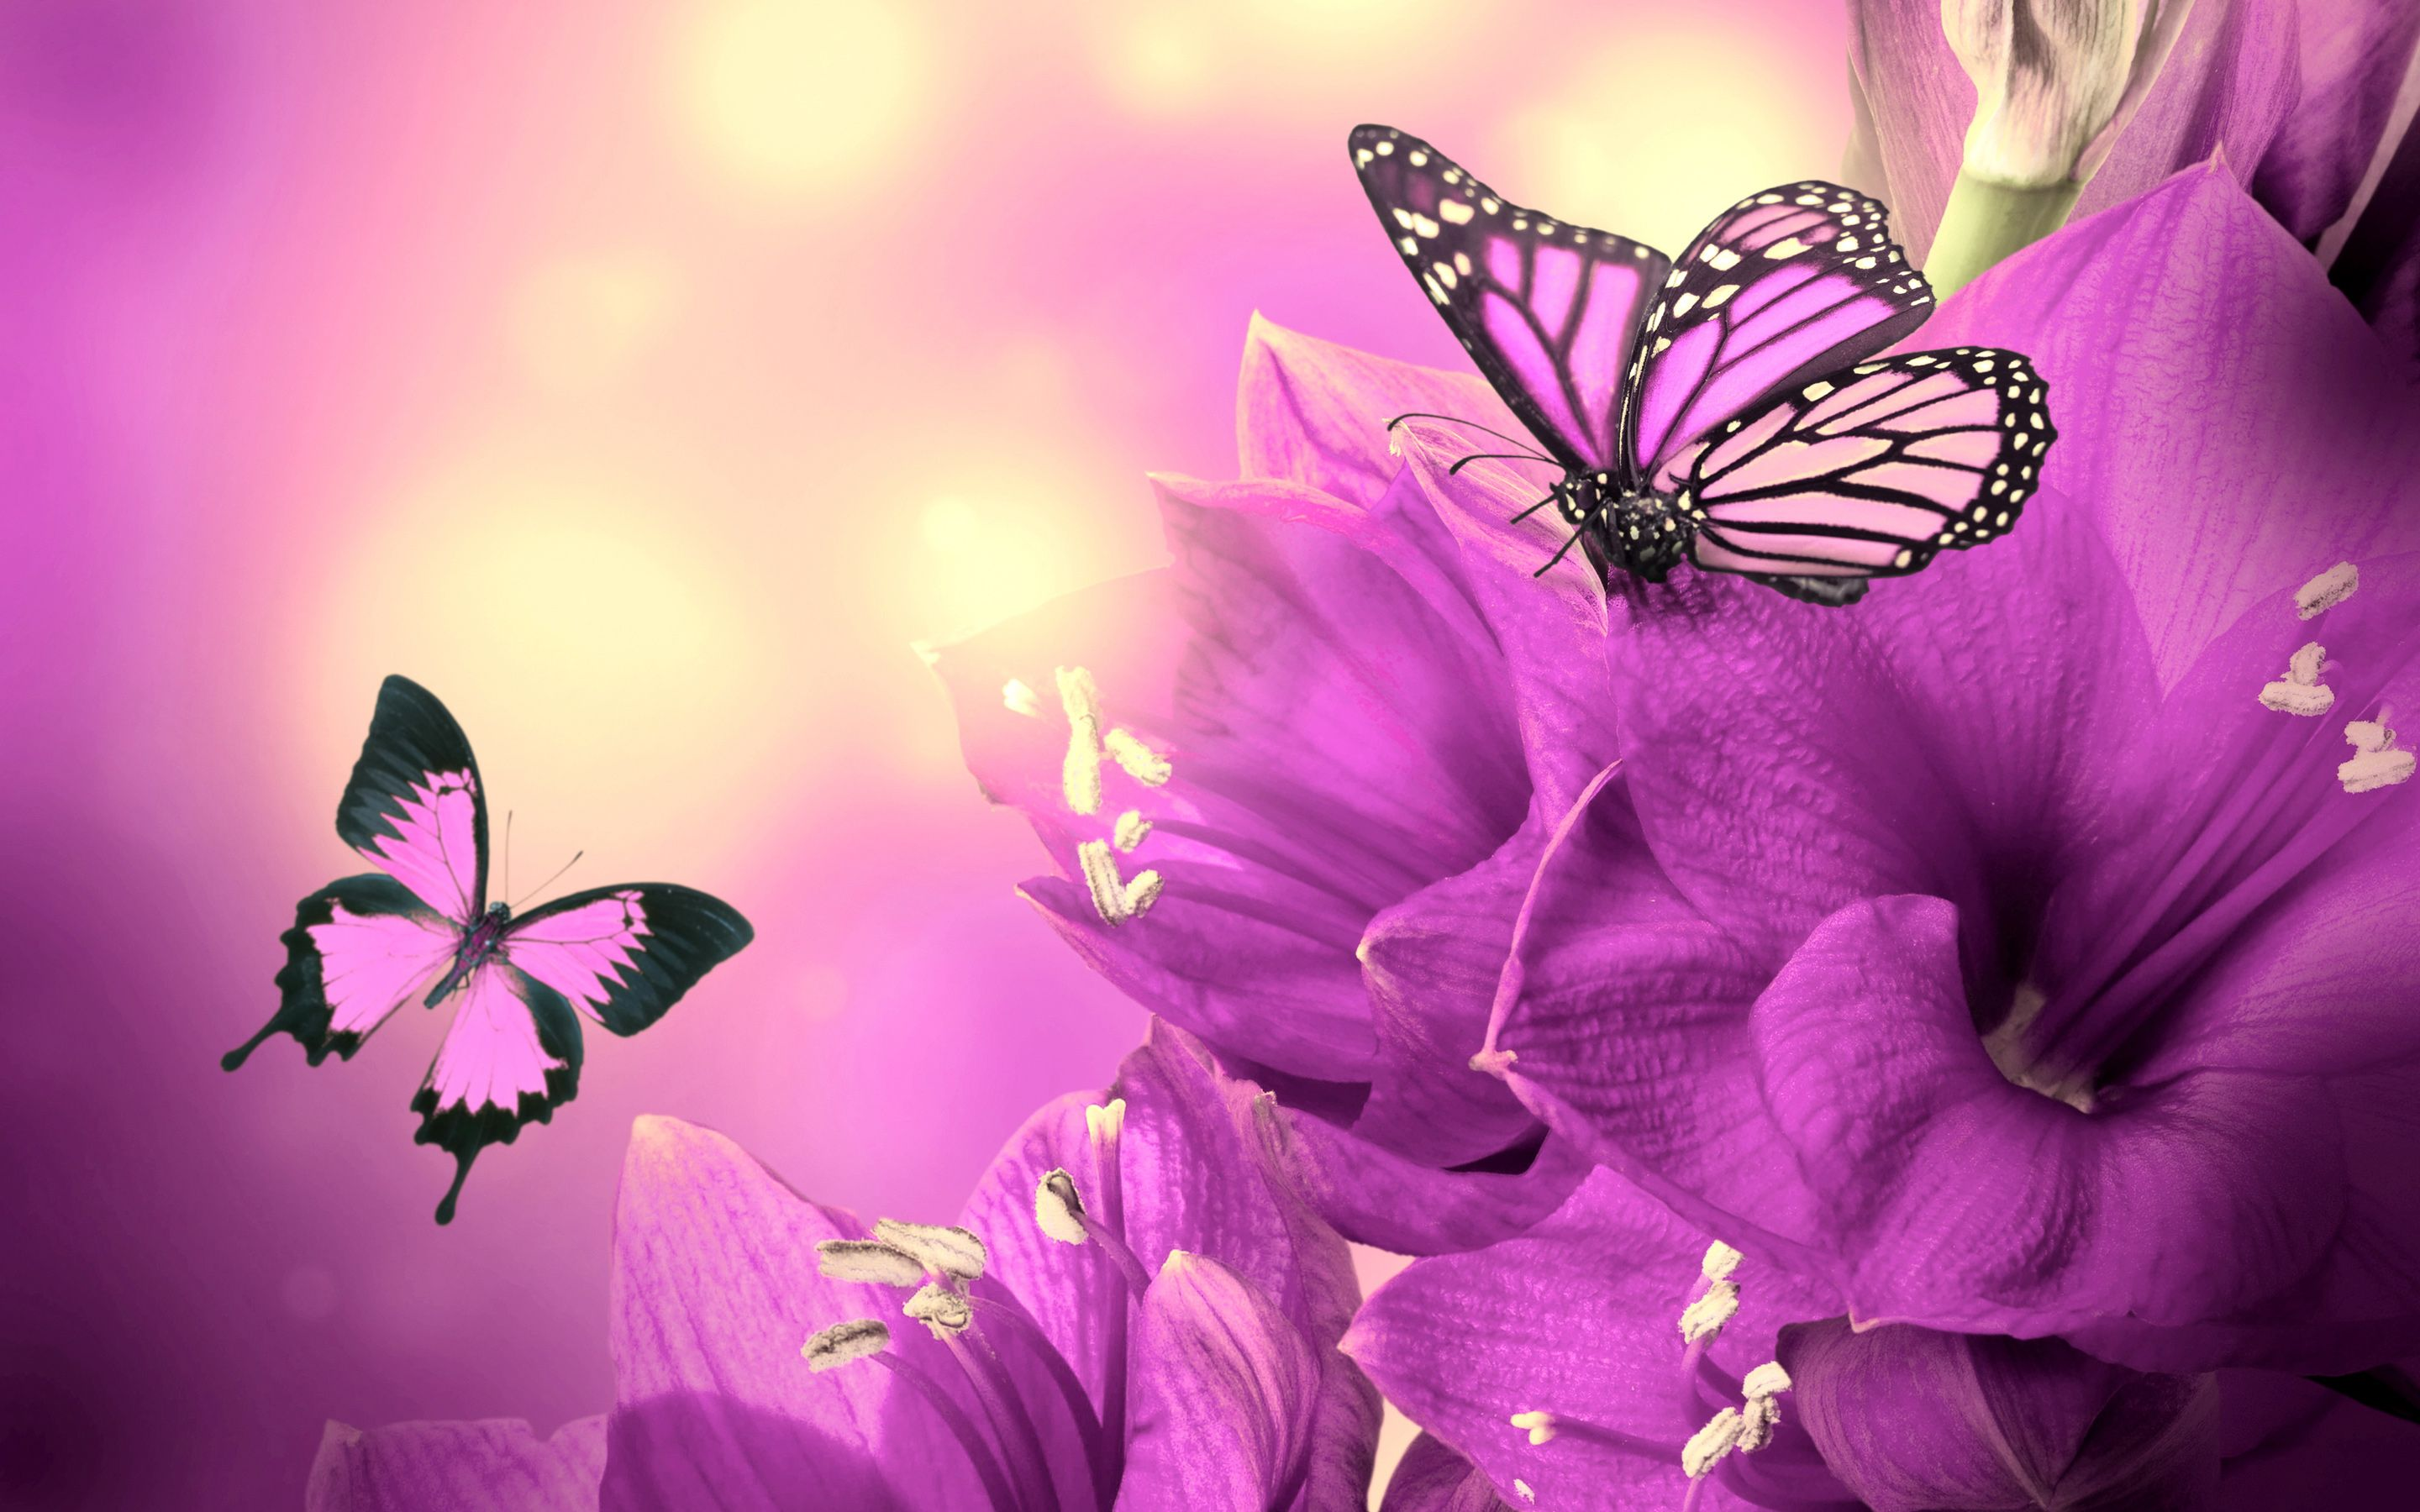 Have A Beautiful And Blessed Thursday Thursday Quotes Flowers Butterflies  Blessed Thursday